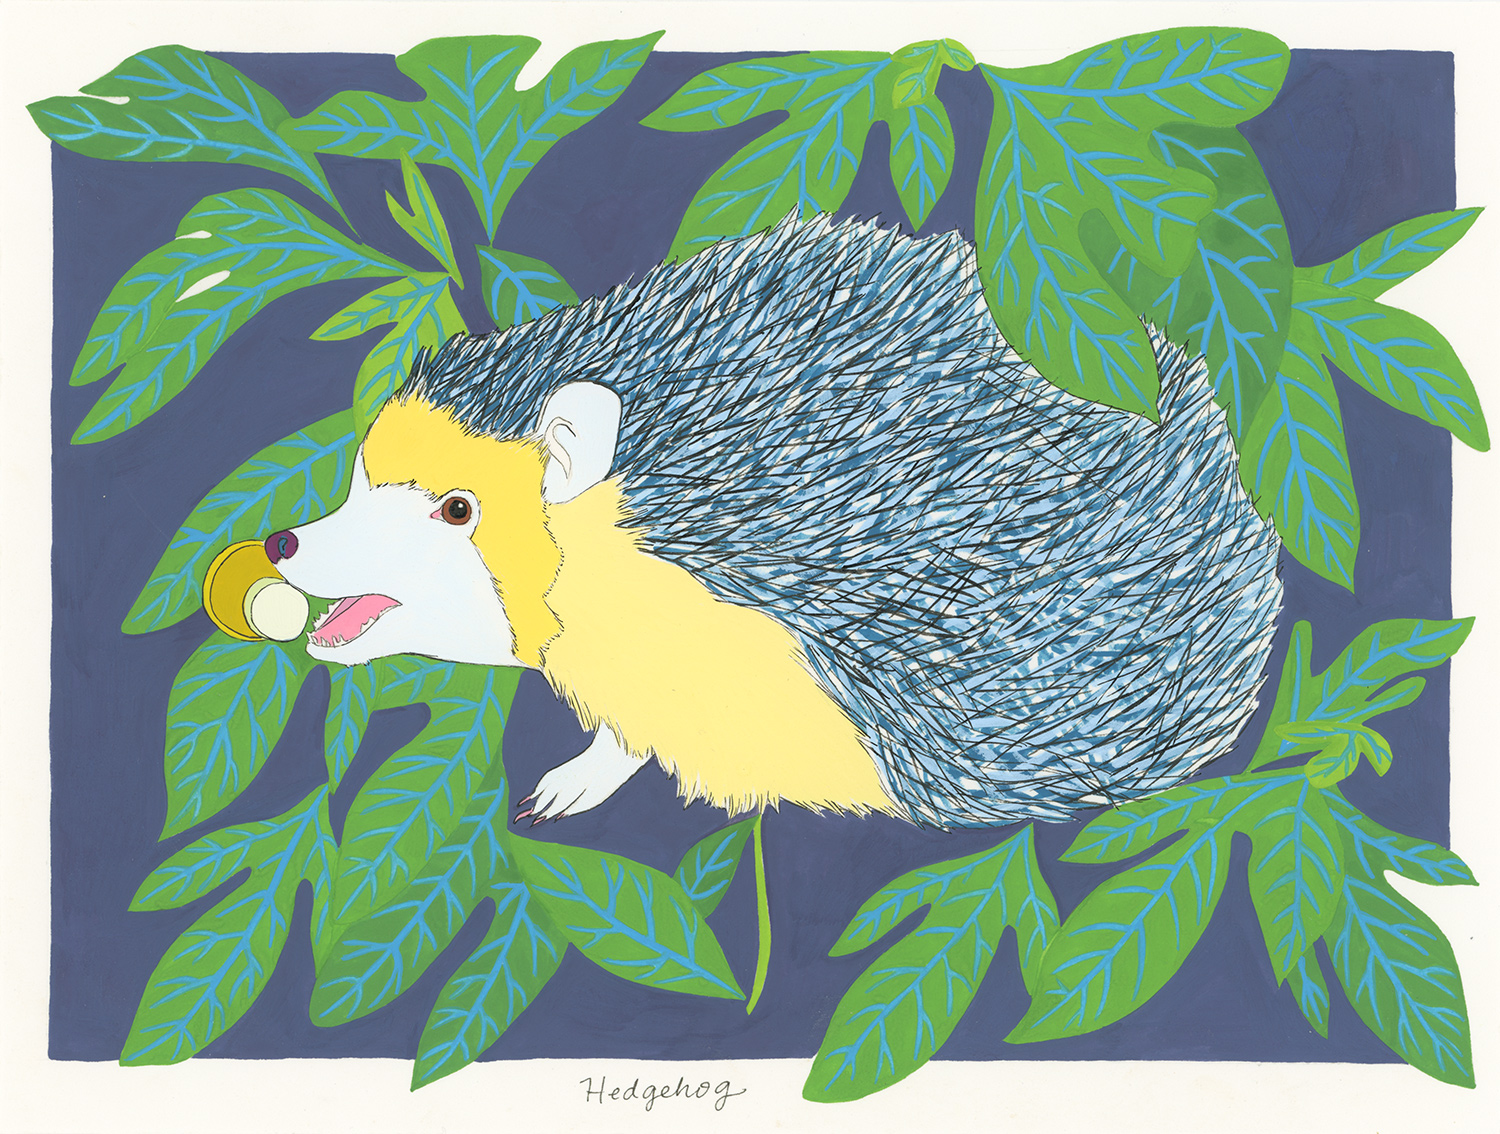 Hedgehog (for the one obsessed with a doorstop)